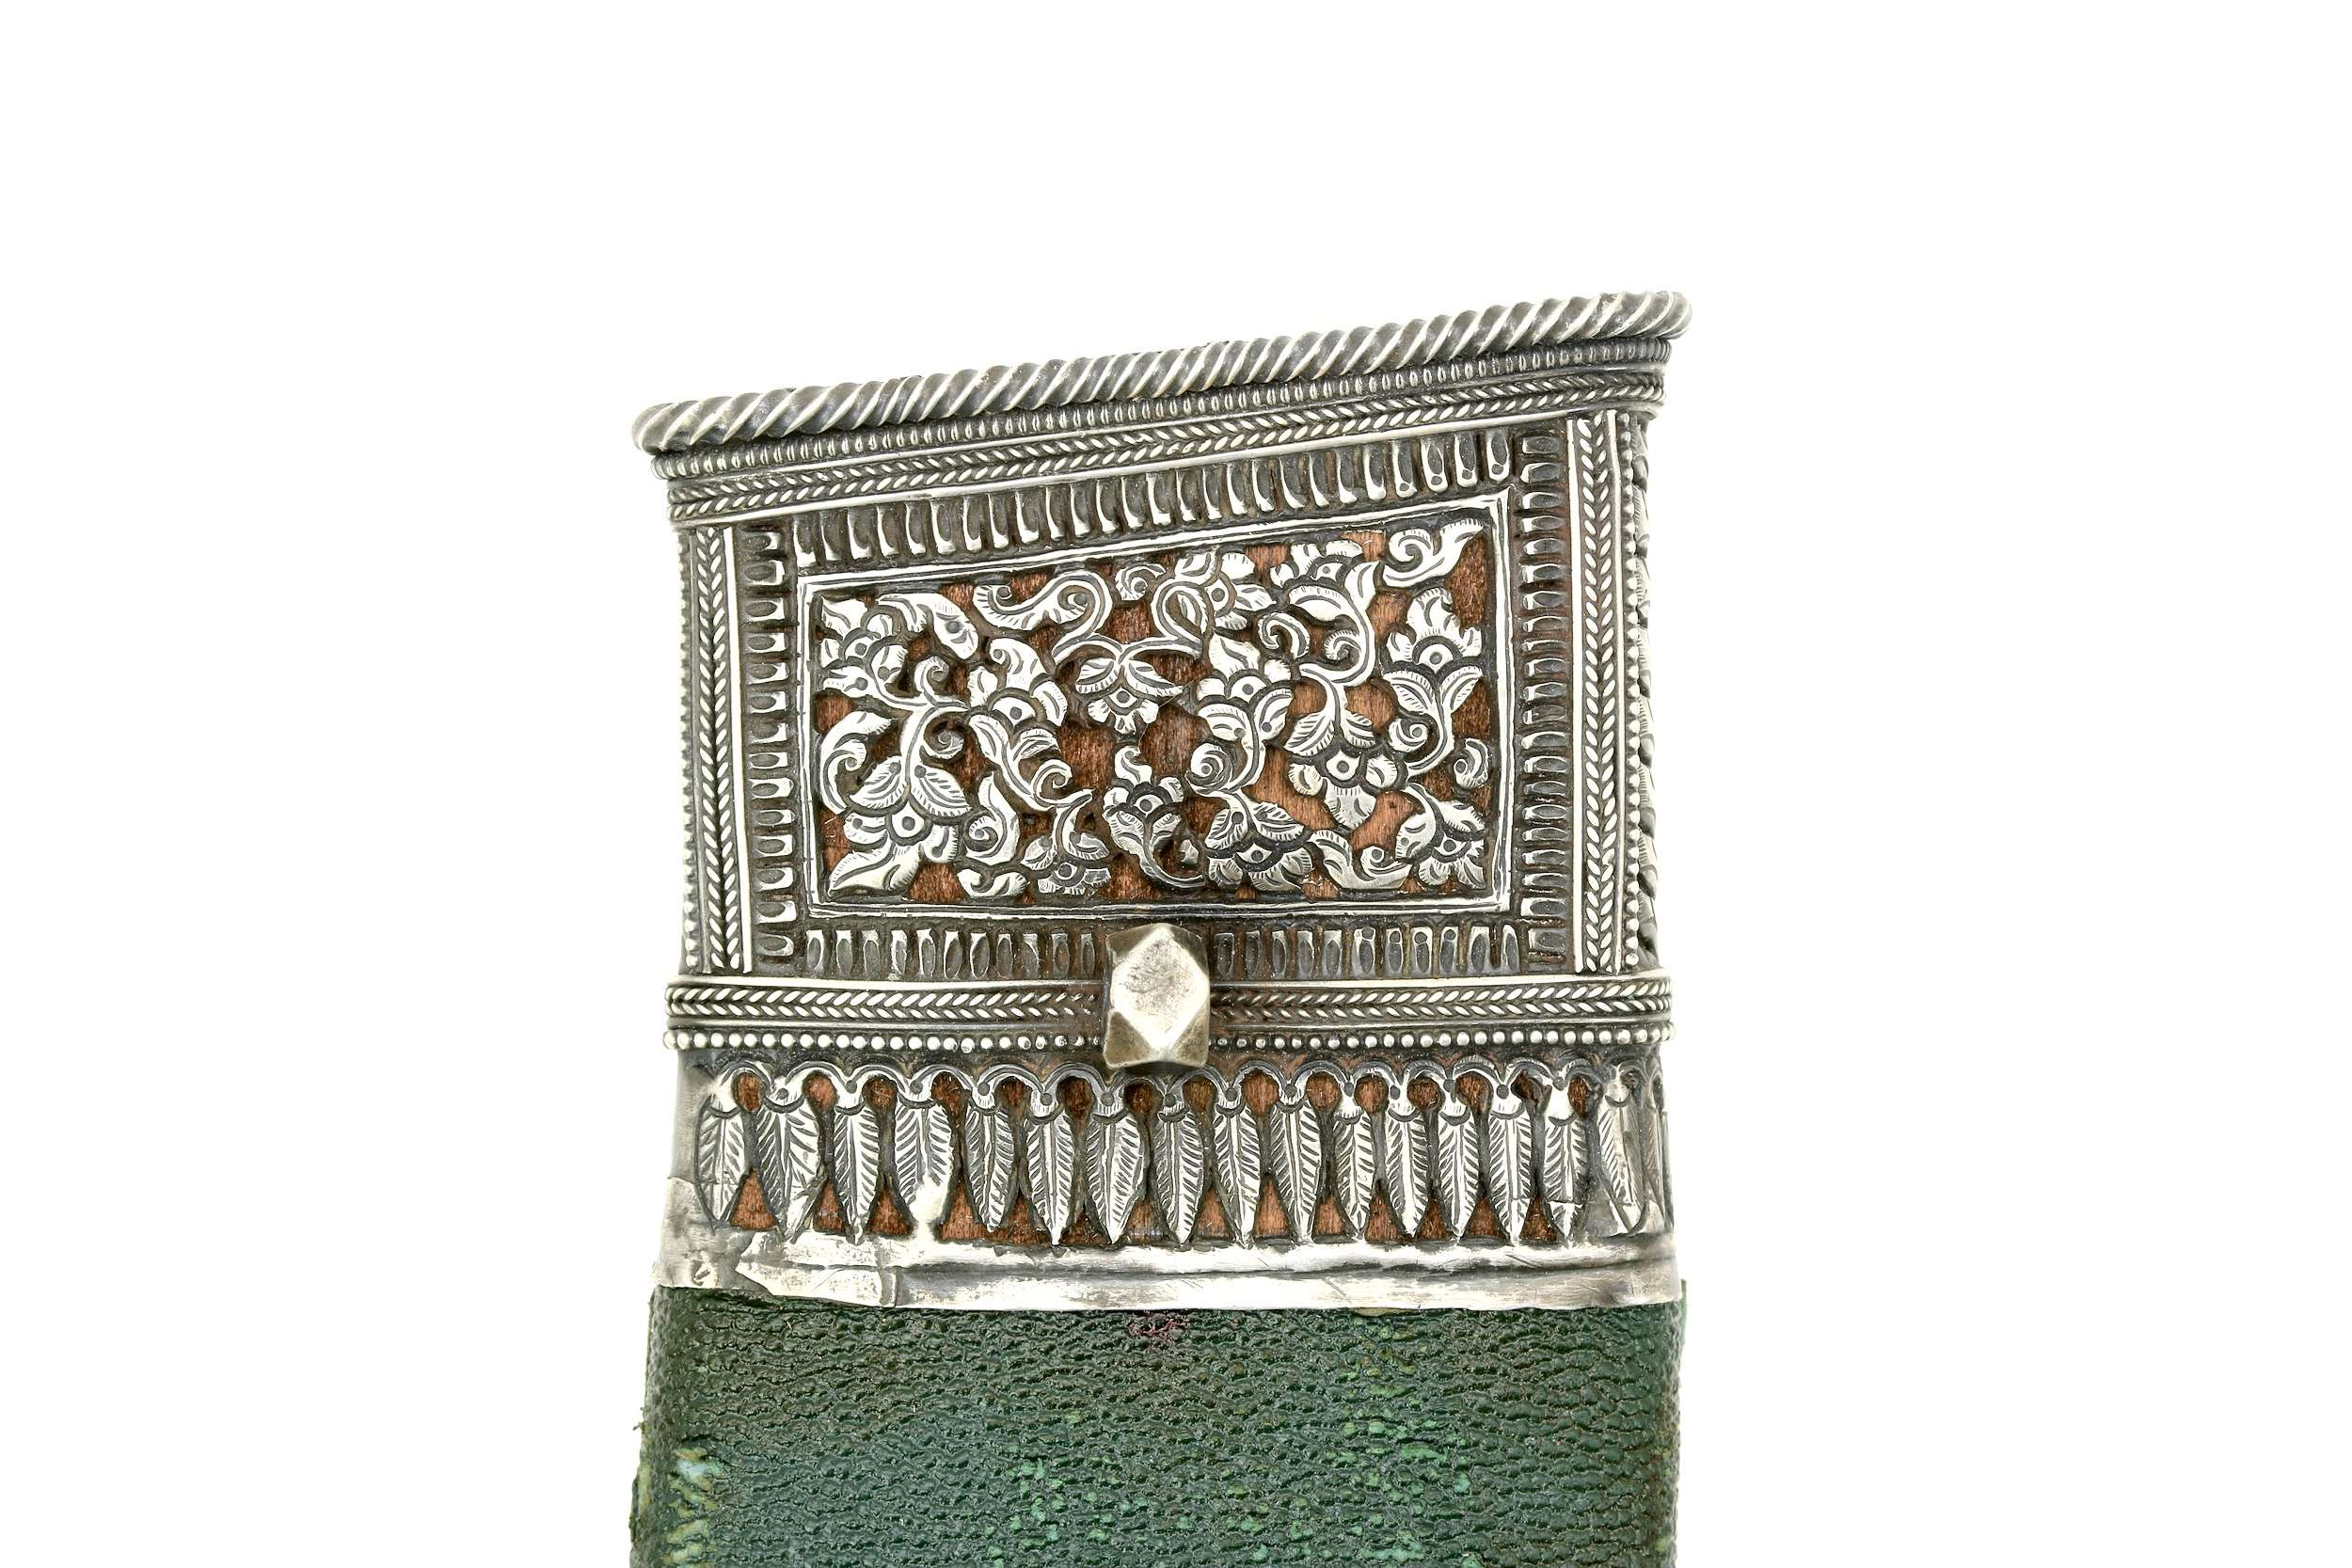 19th century silver mounted khukuki